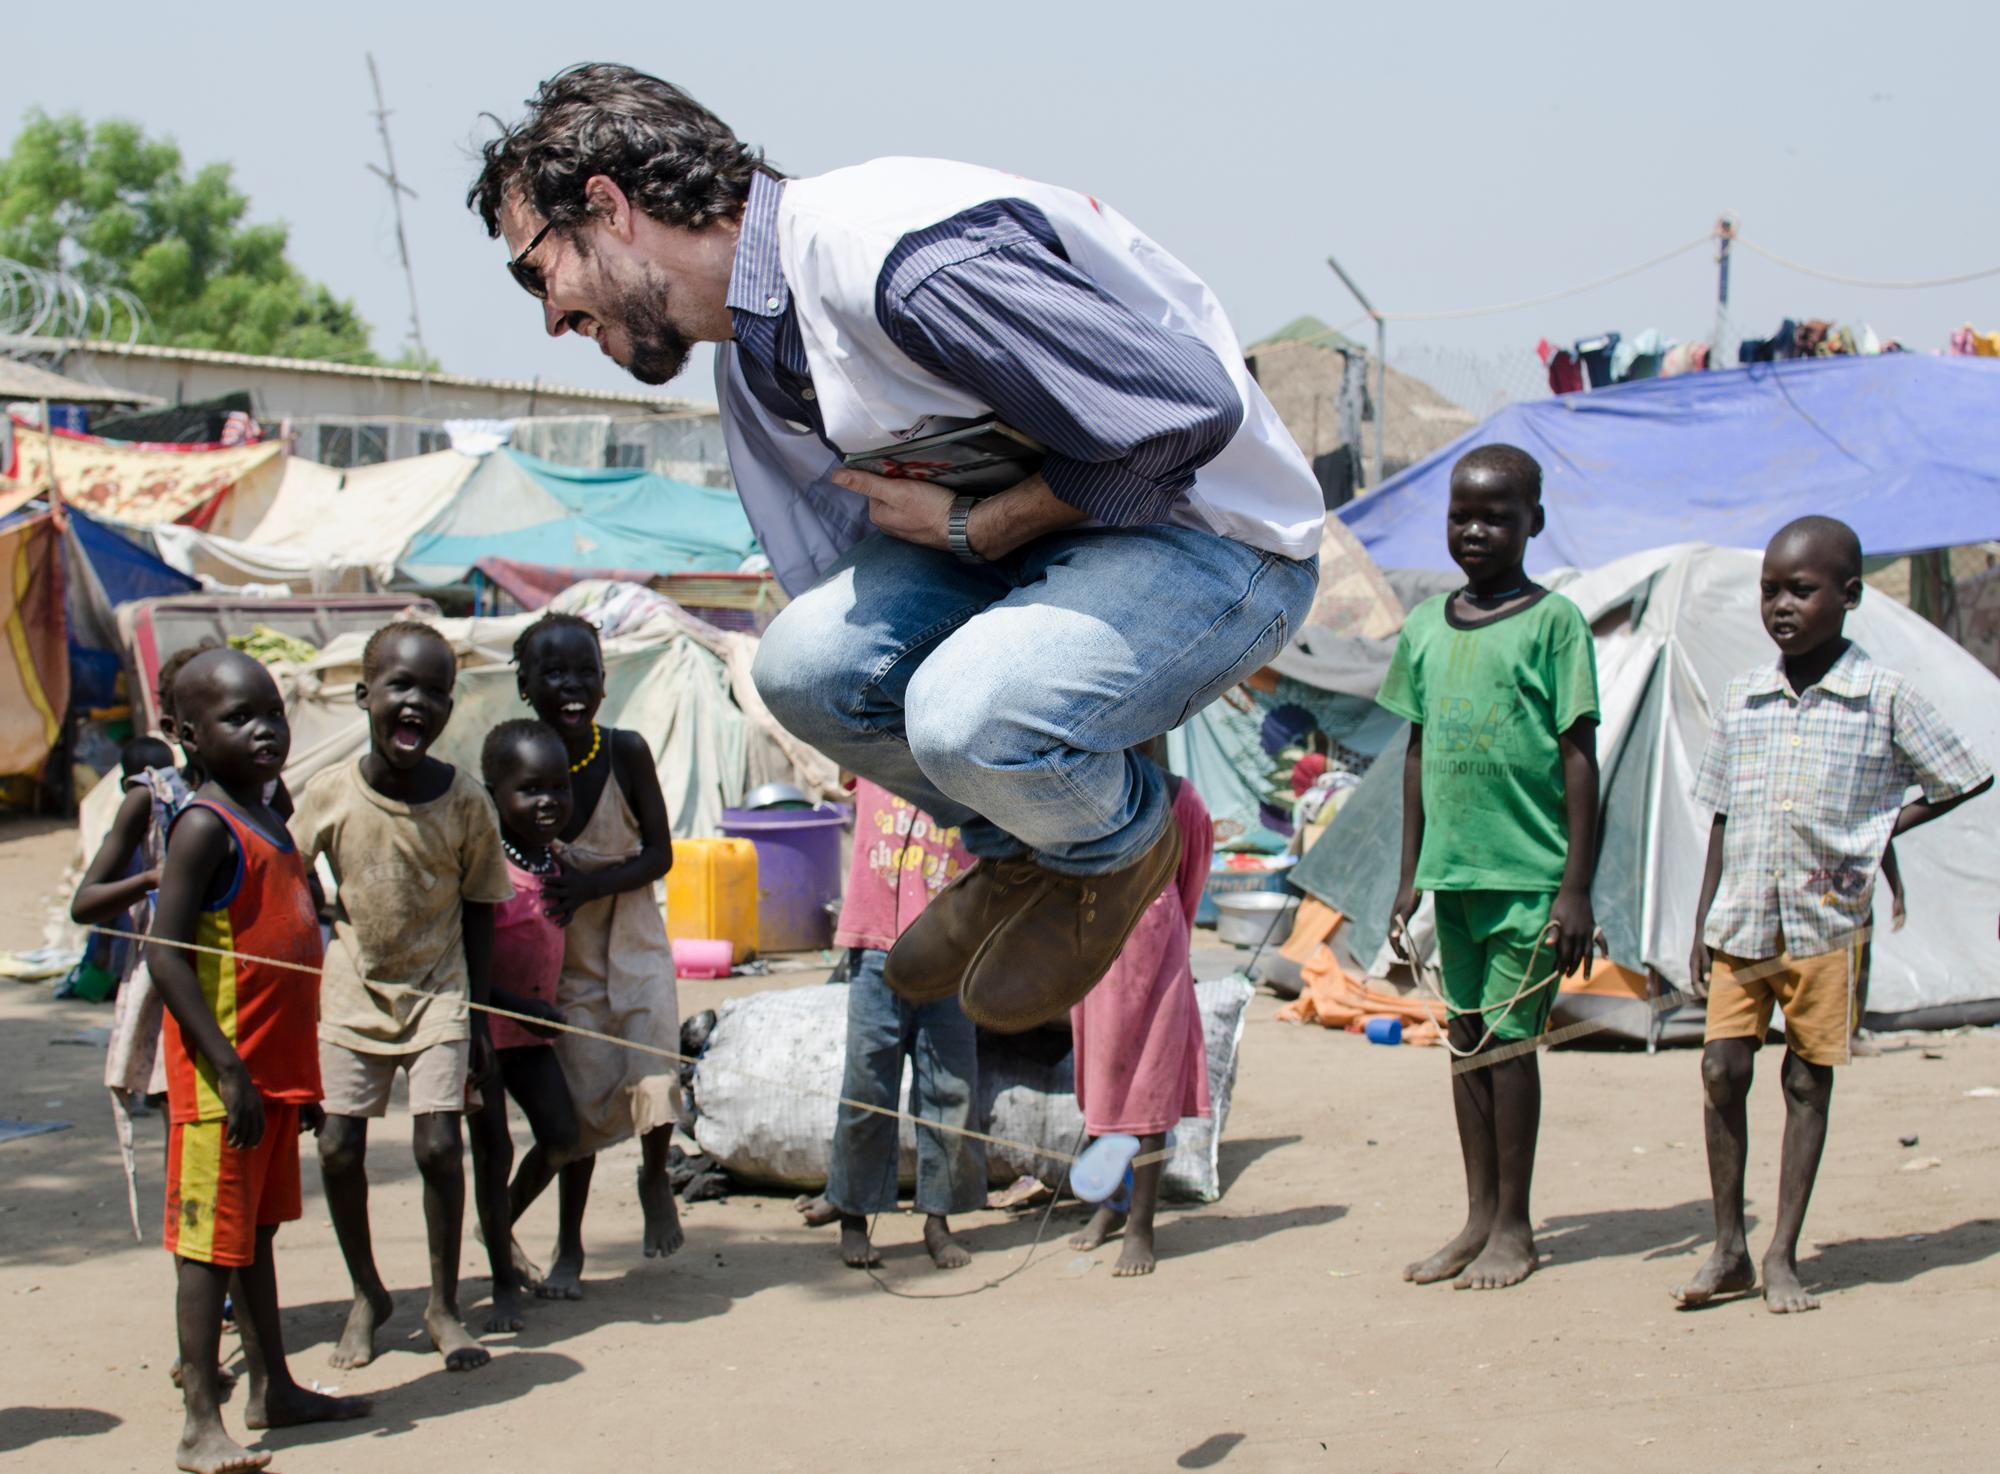 An MSF worker jumps over a skipping rope as smiling children look on.